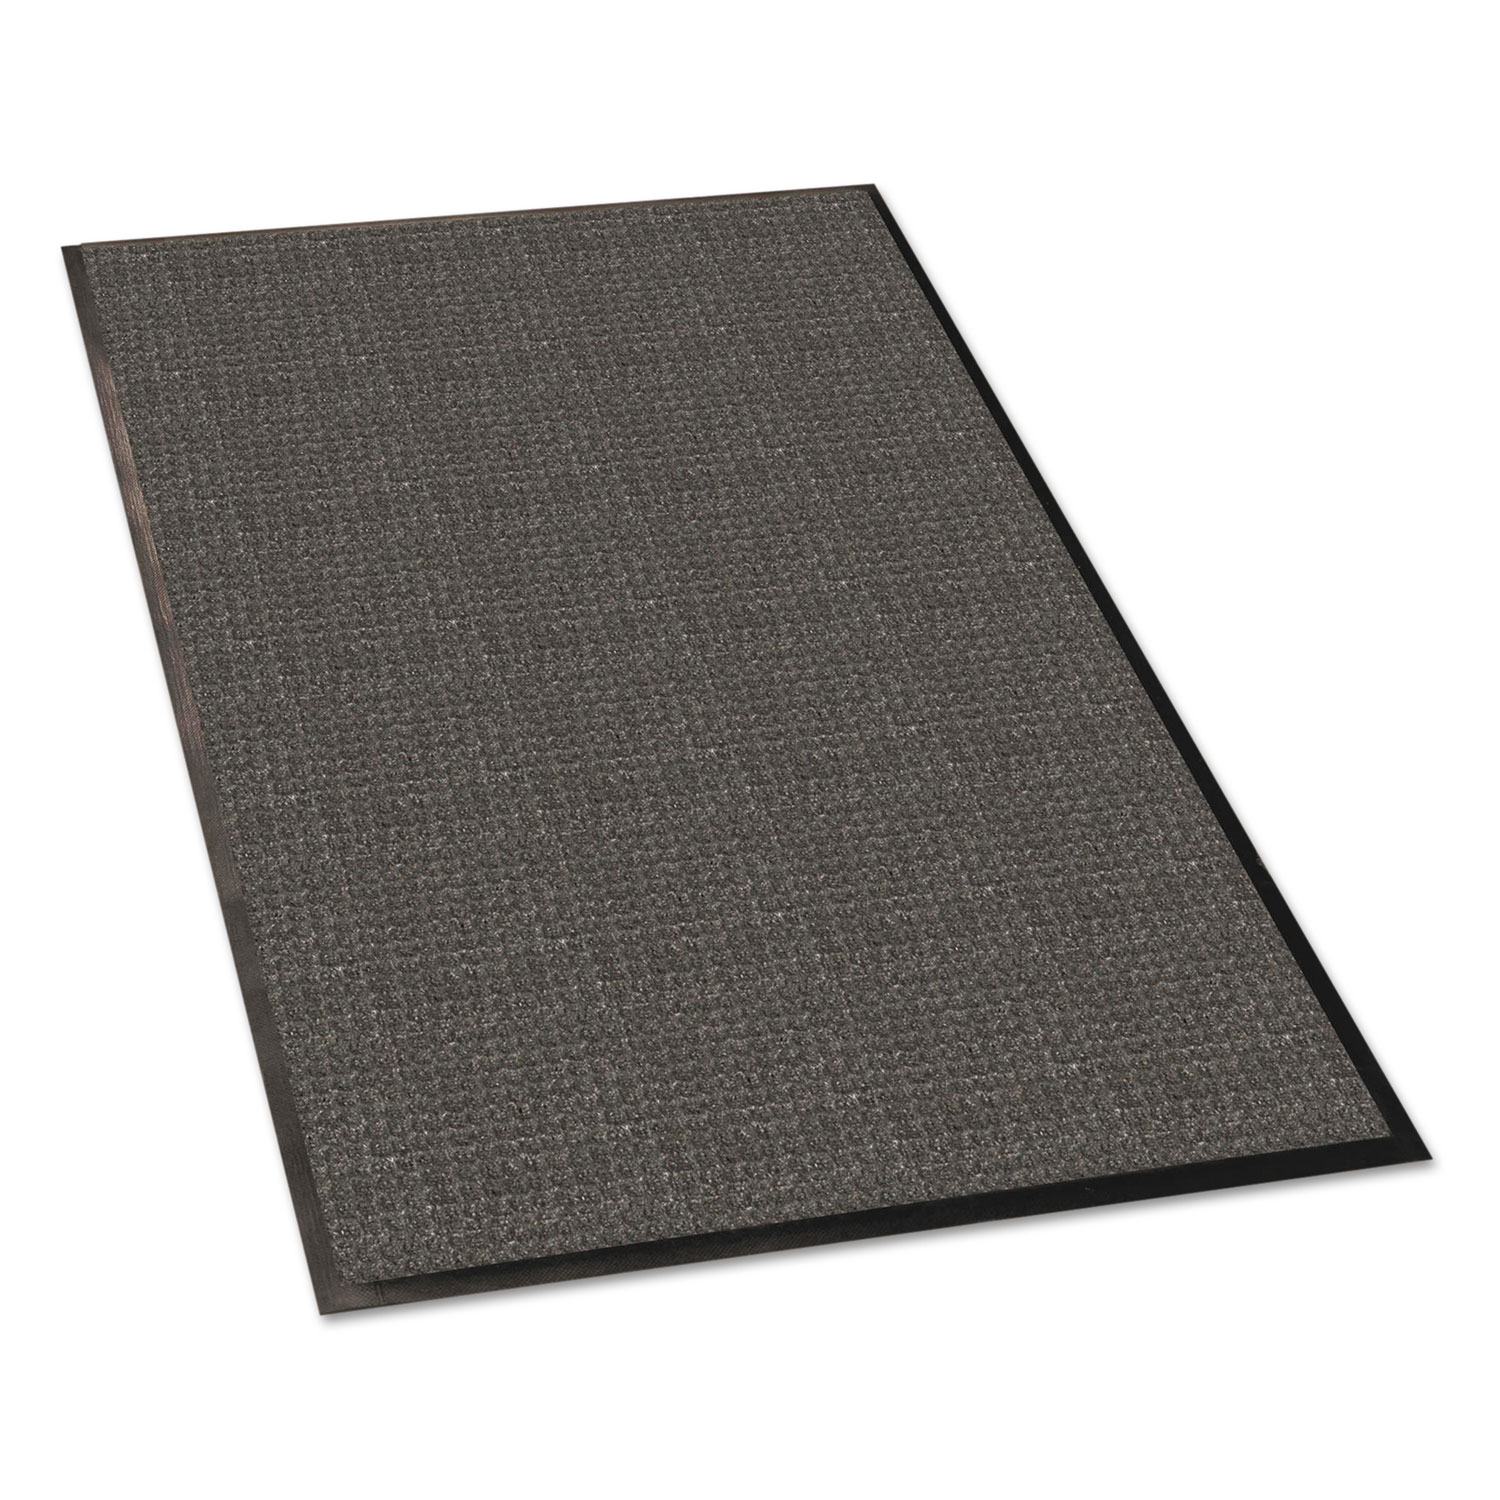 dirt mat guard door heibai buy water mats polyester cotton trapper